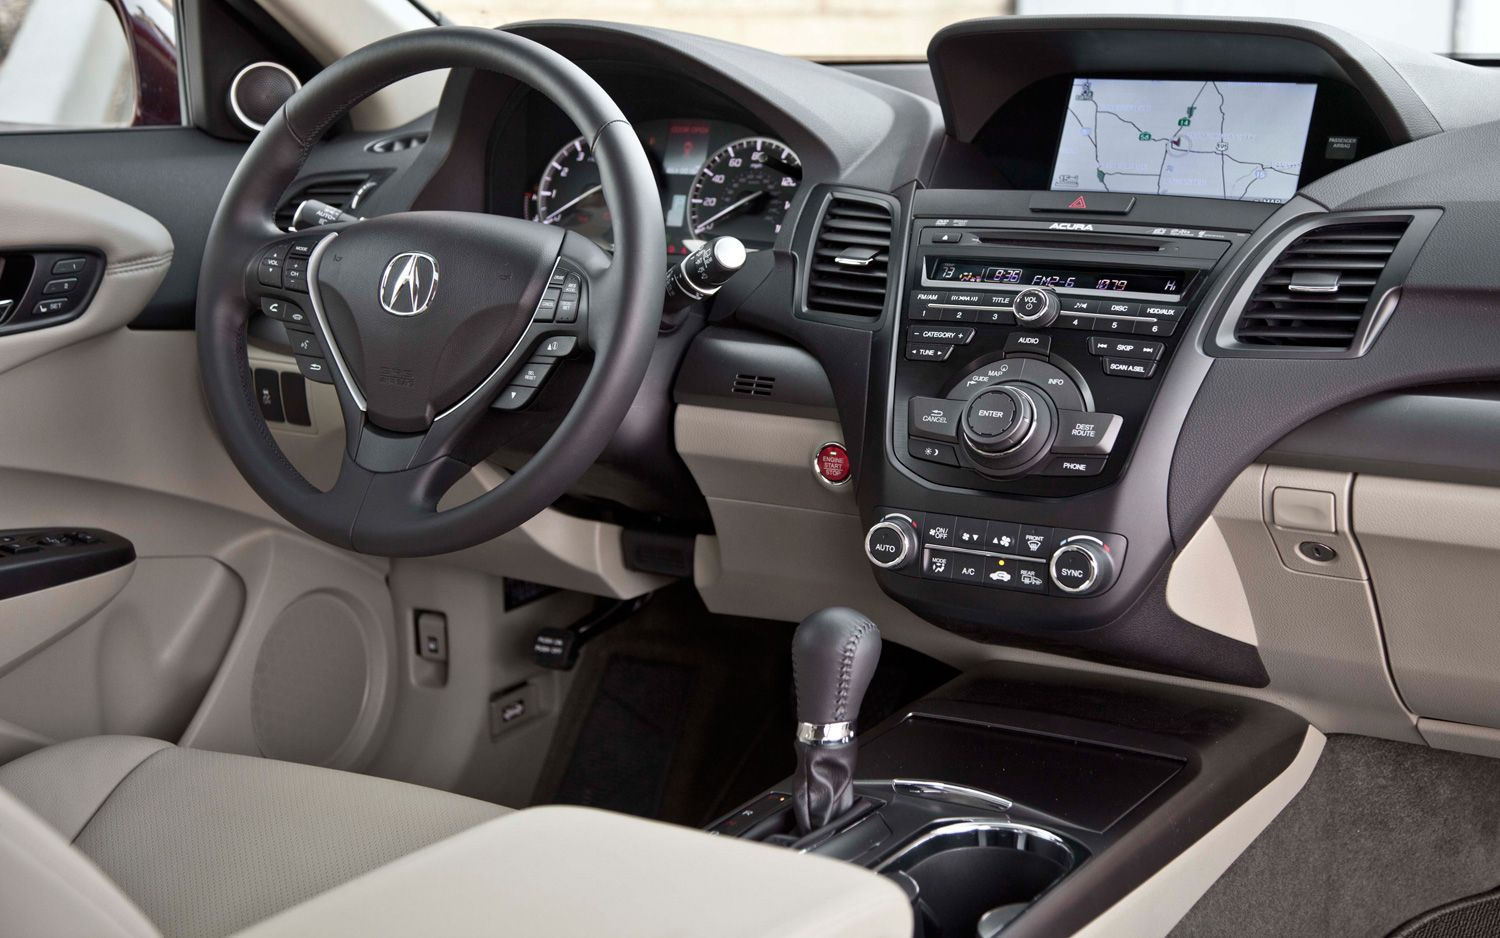 Delightful 2014 Acura Rdx Interior Hd Wallpaper